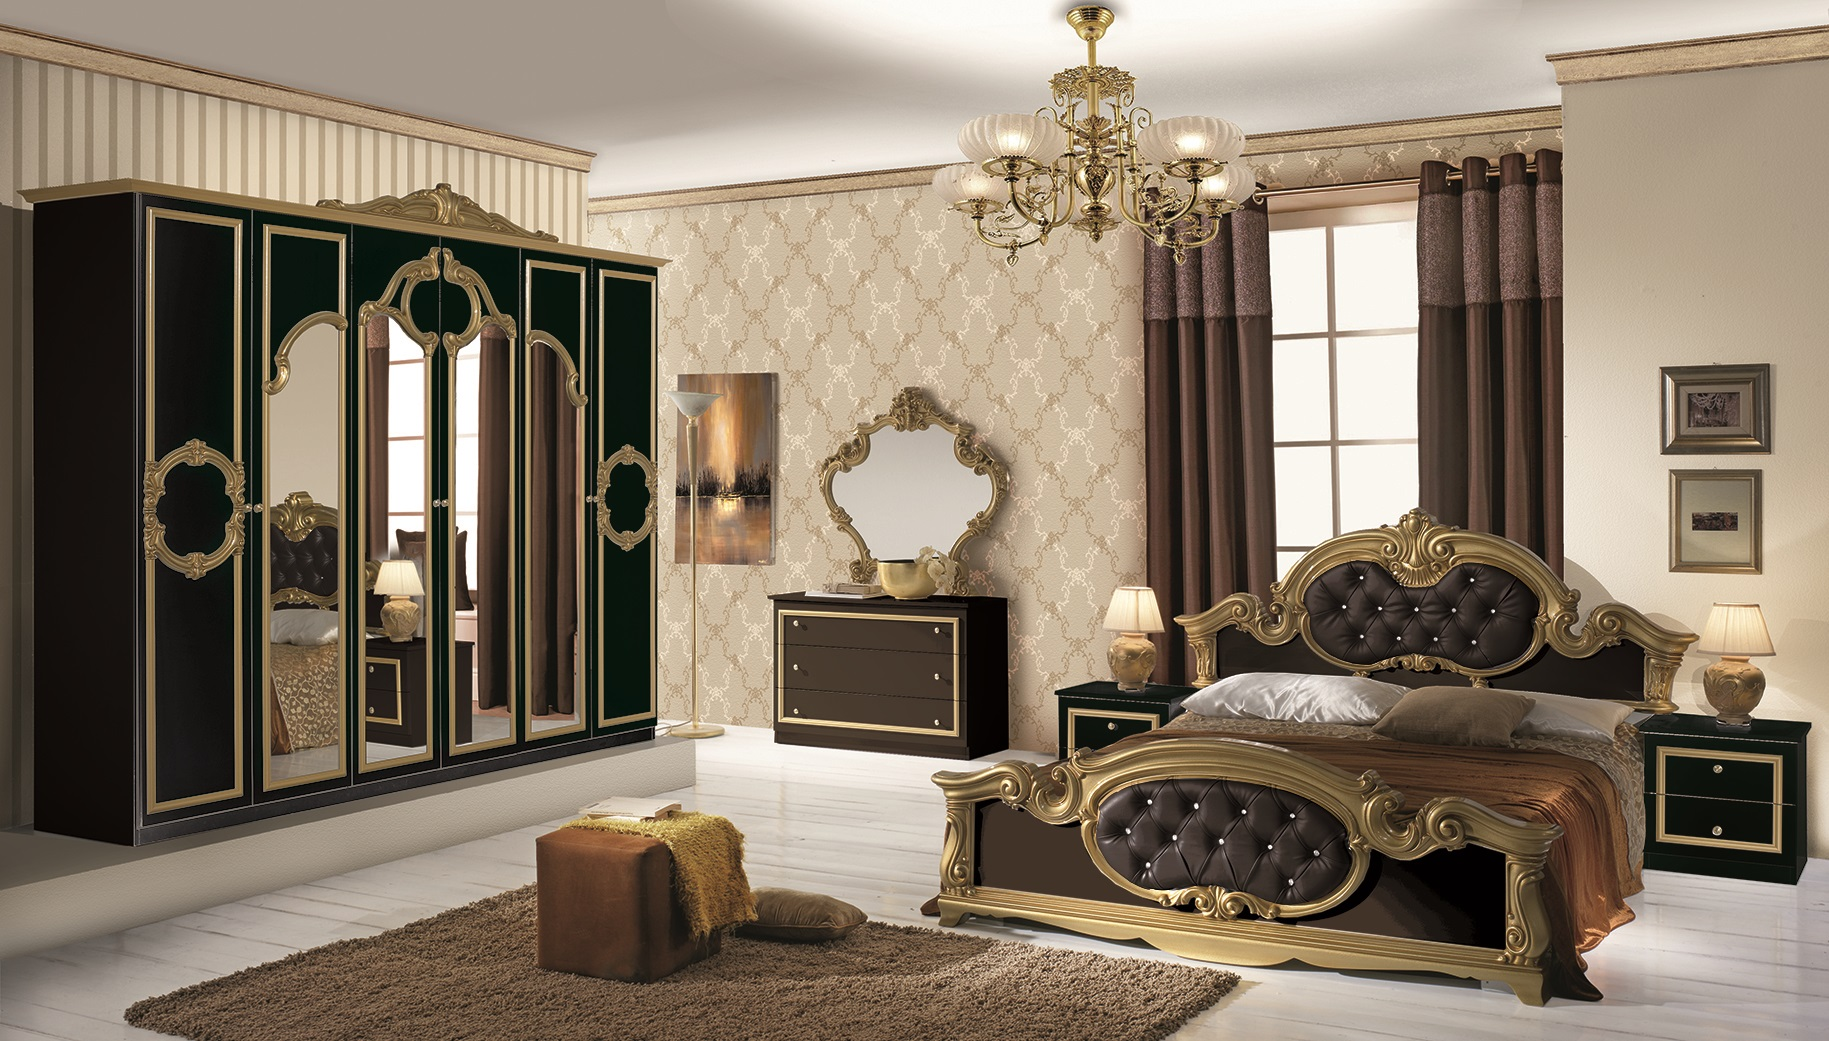 Schlafzimmer Barocco In Weiss Gold Klassik 4trg.